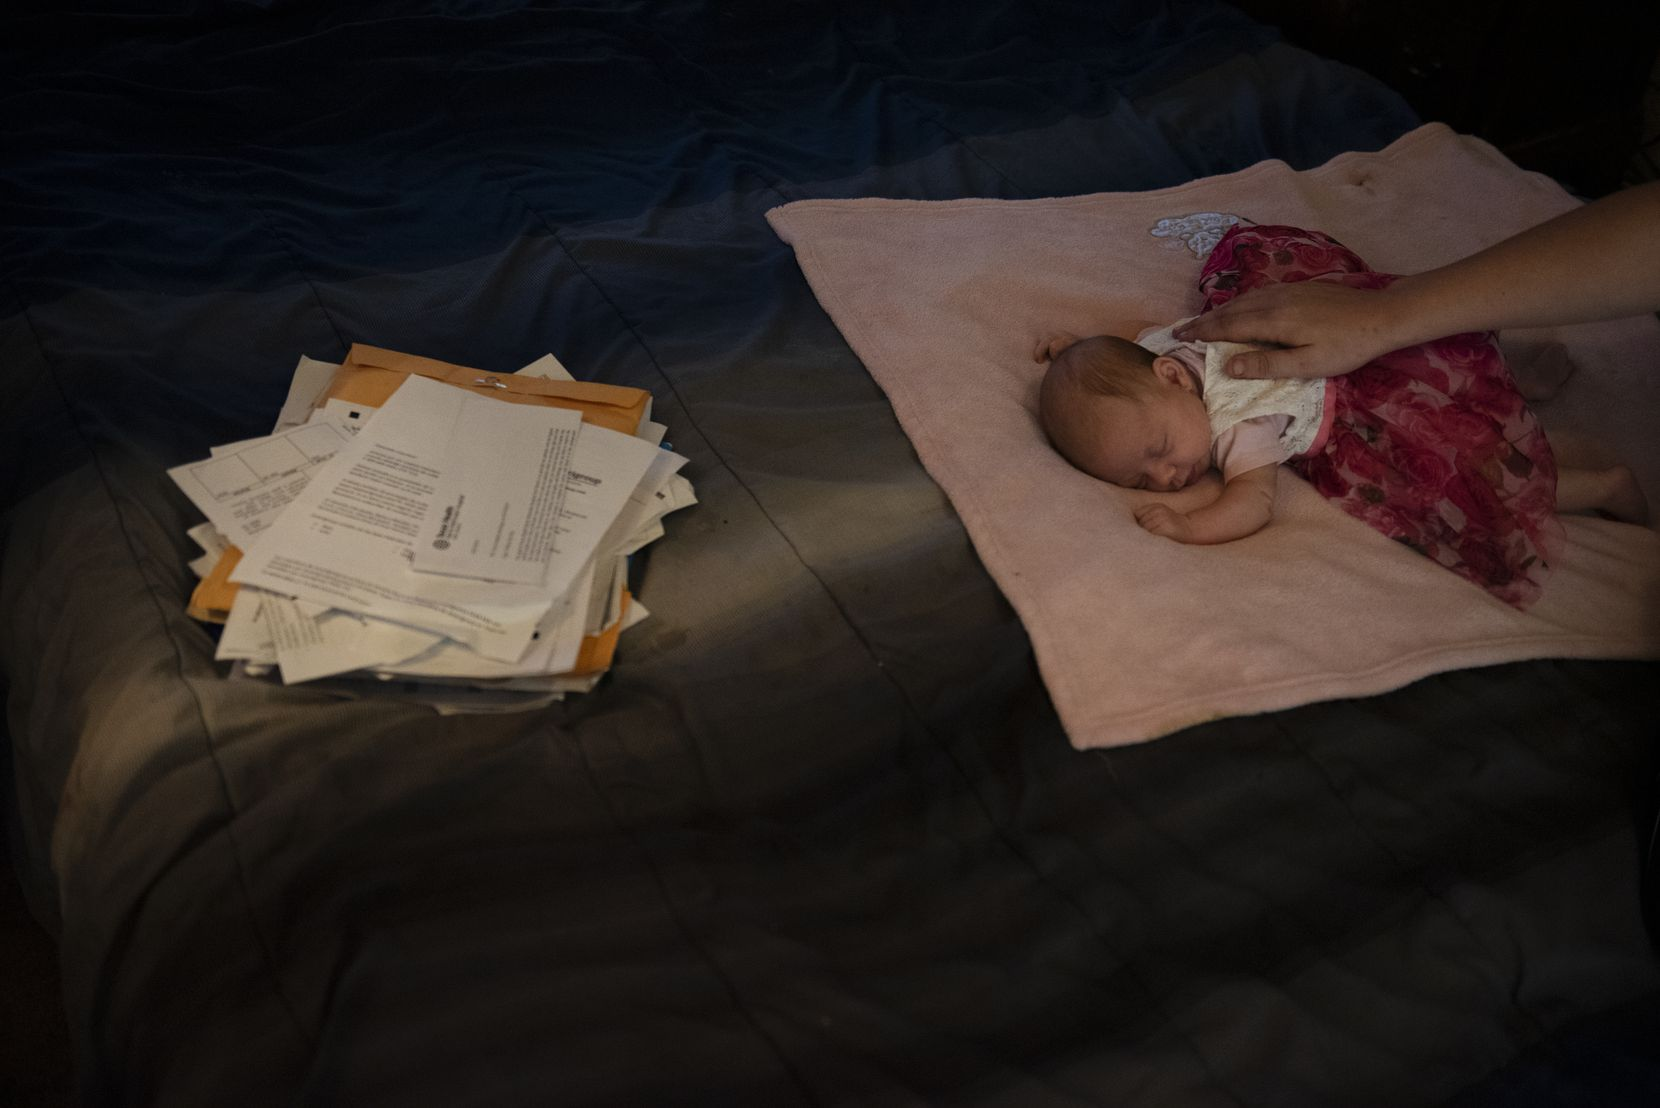 Tiffany Revilla strokes her newborn daughter's back as the baby sits next to a pile of medical bills at their home.